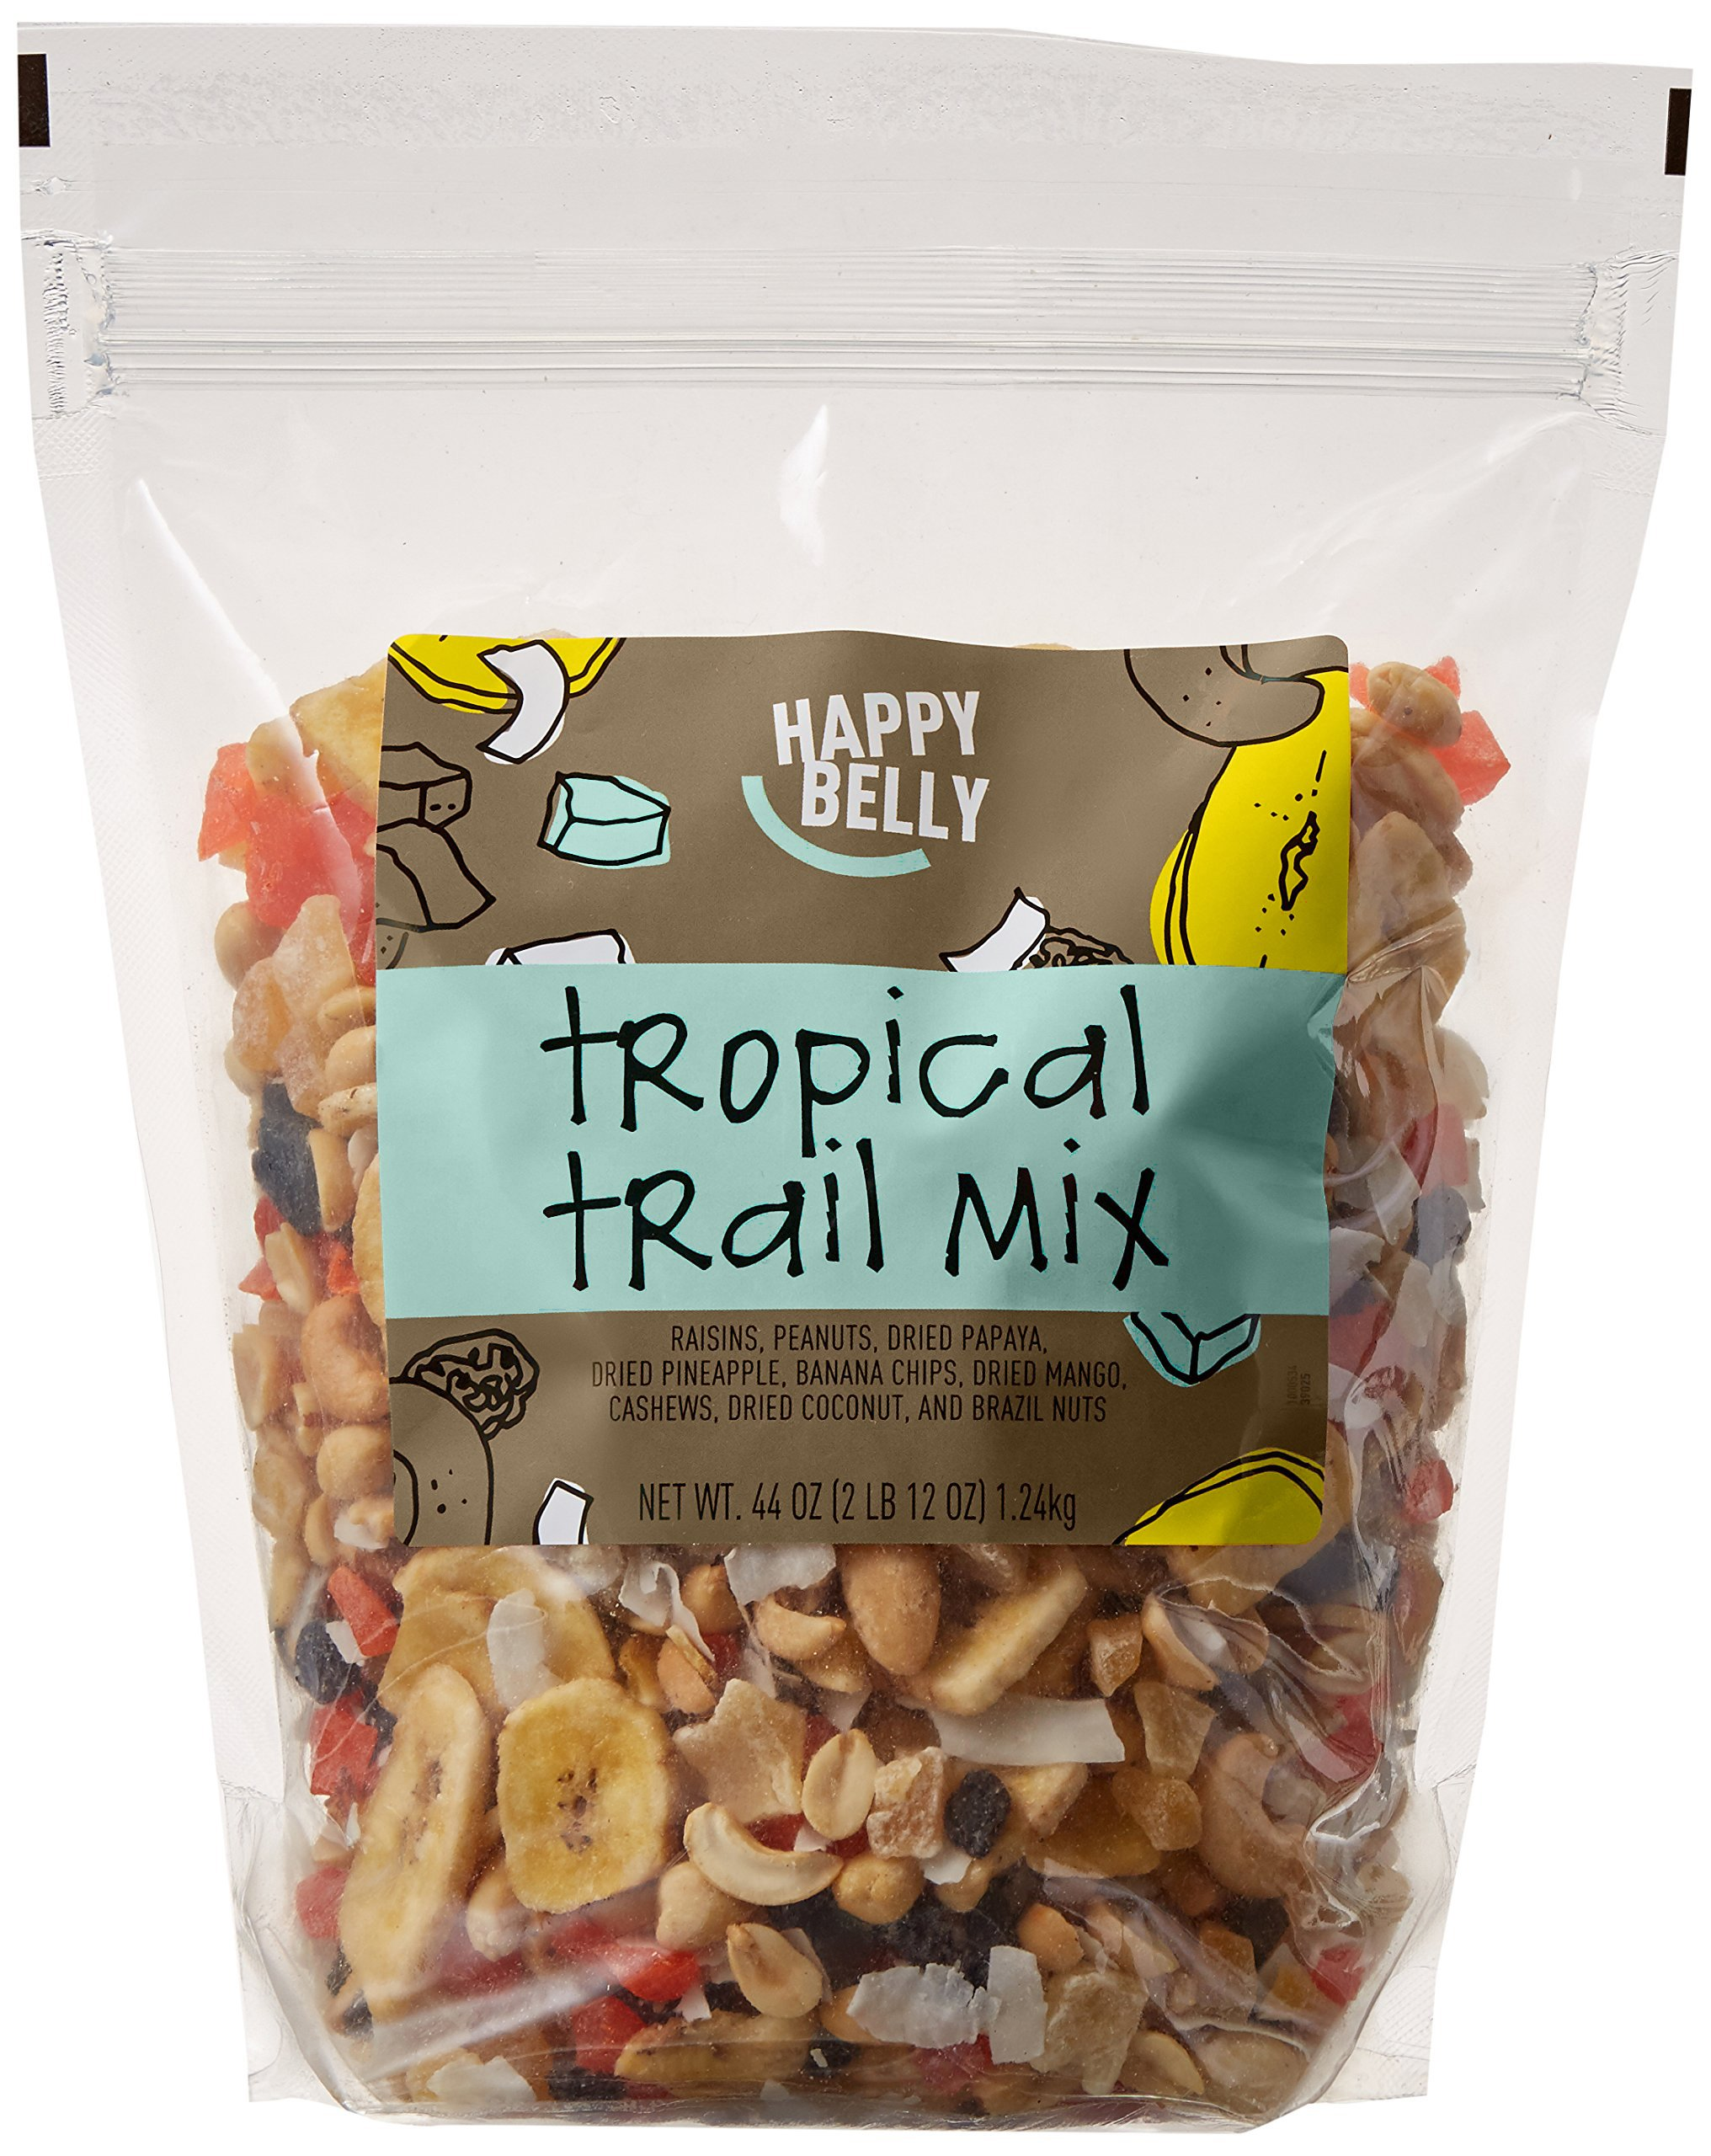 Amazon Brand - Happy Belly Amazon Brand Tropical Trail Mix, 44 ounce by Happy Belly (Image #1)